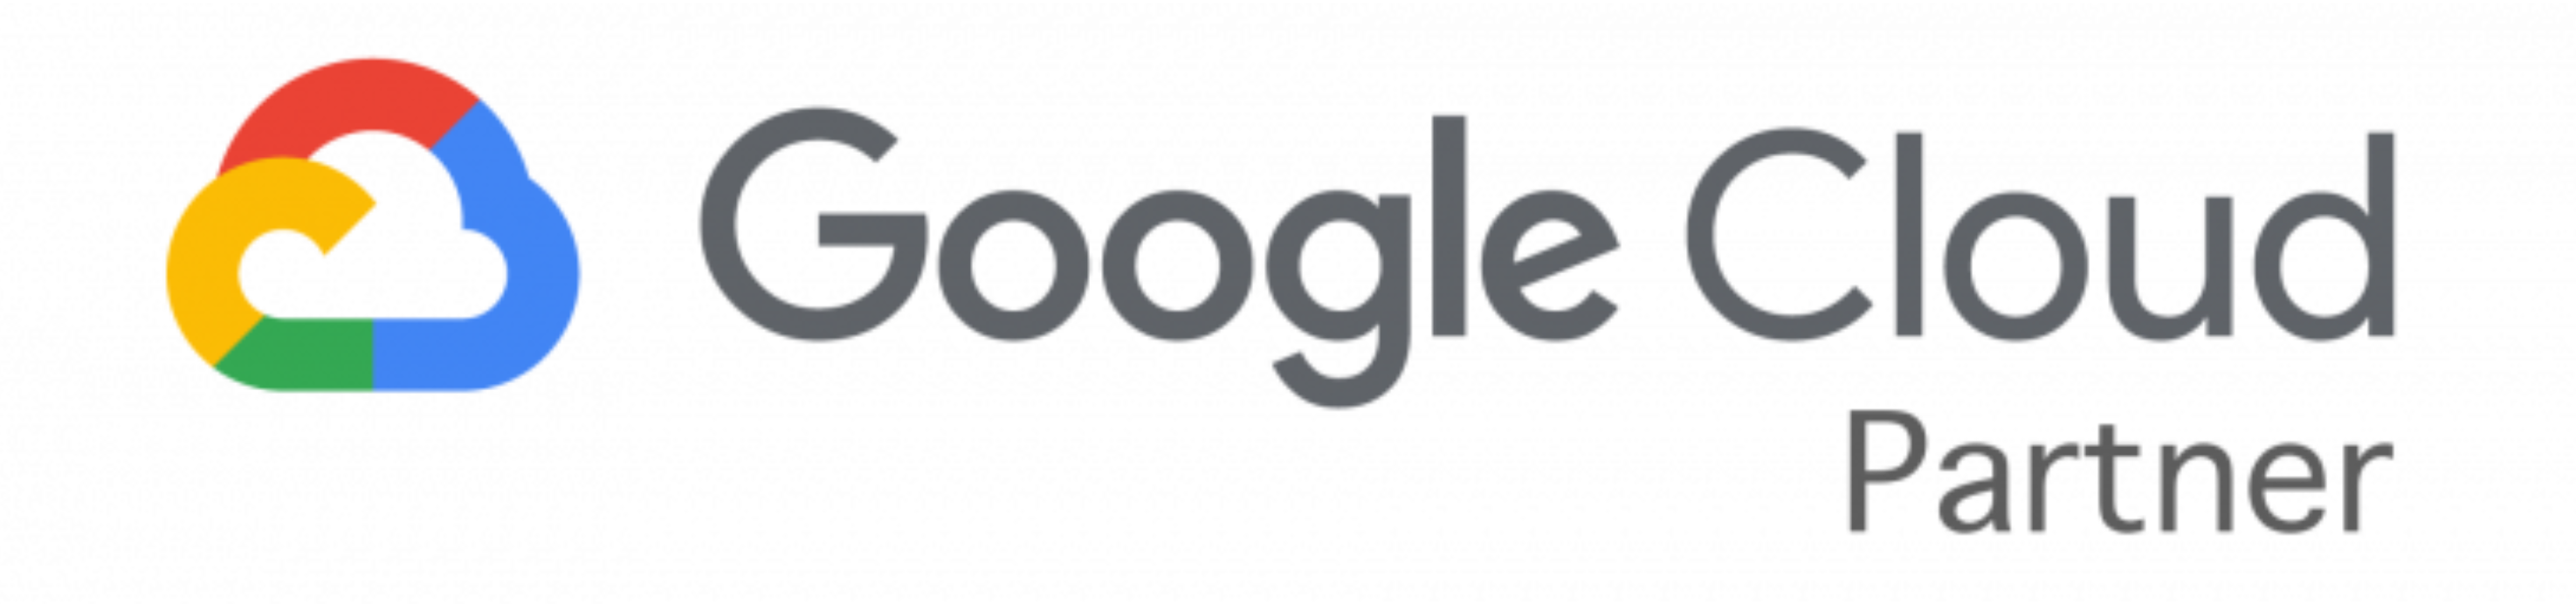 Google Cloud - Partner